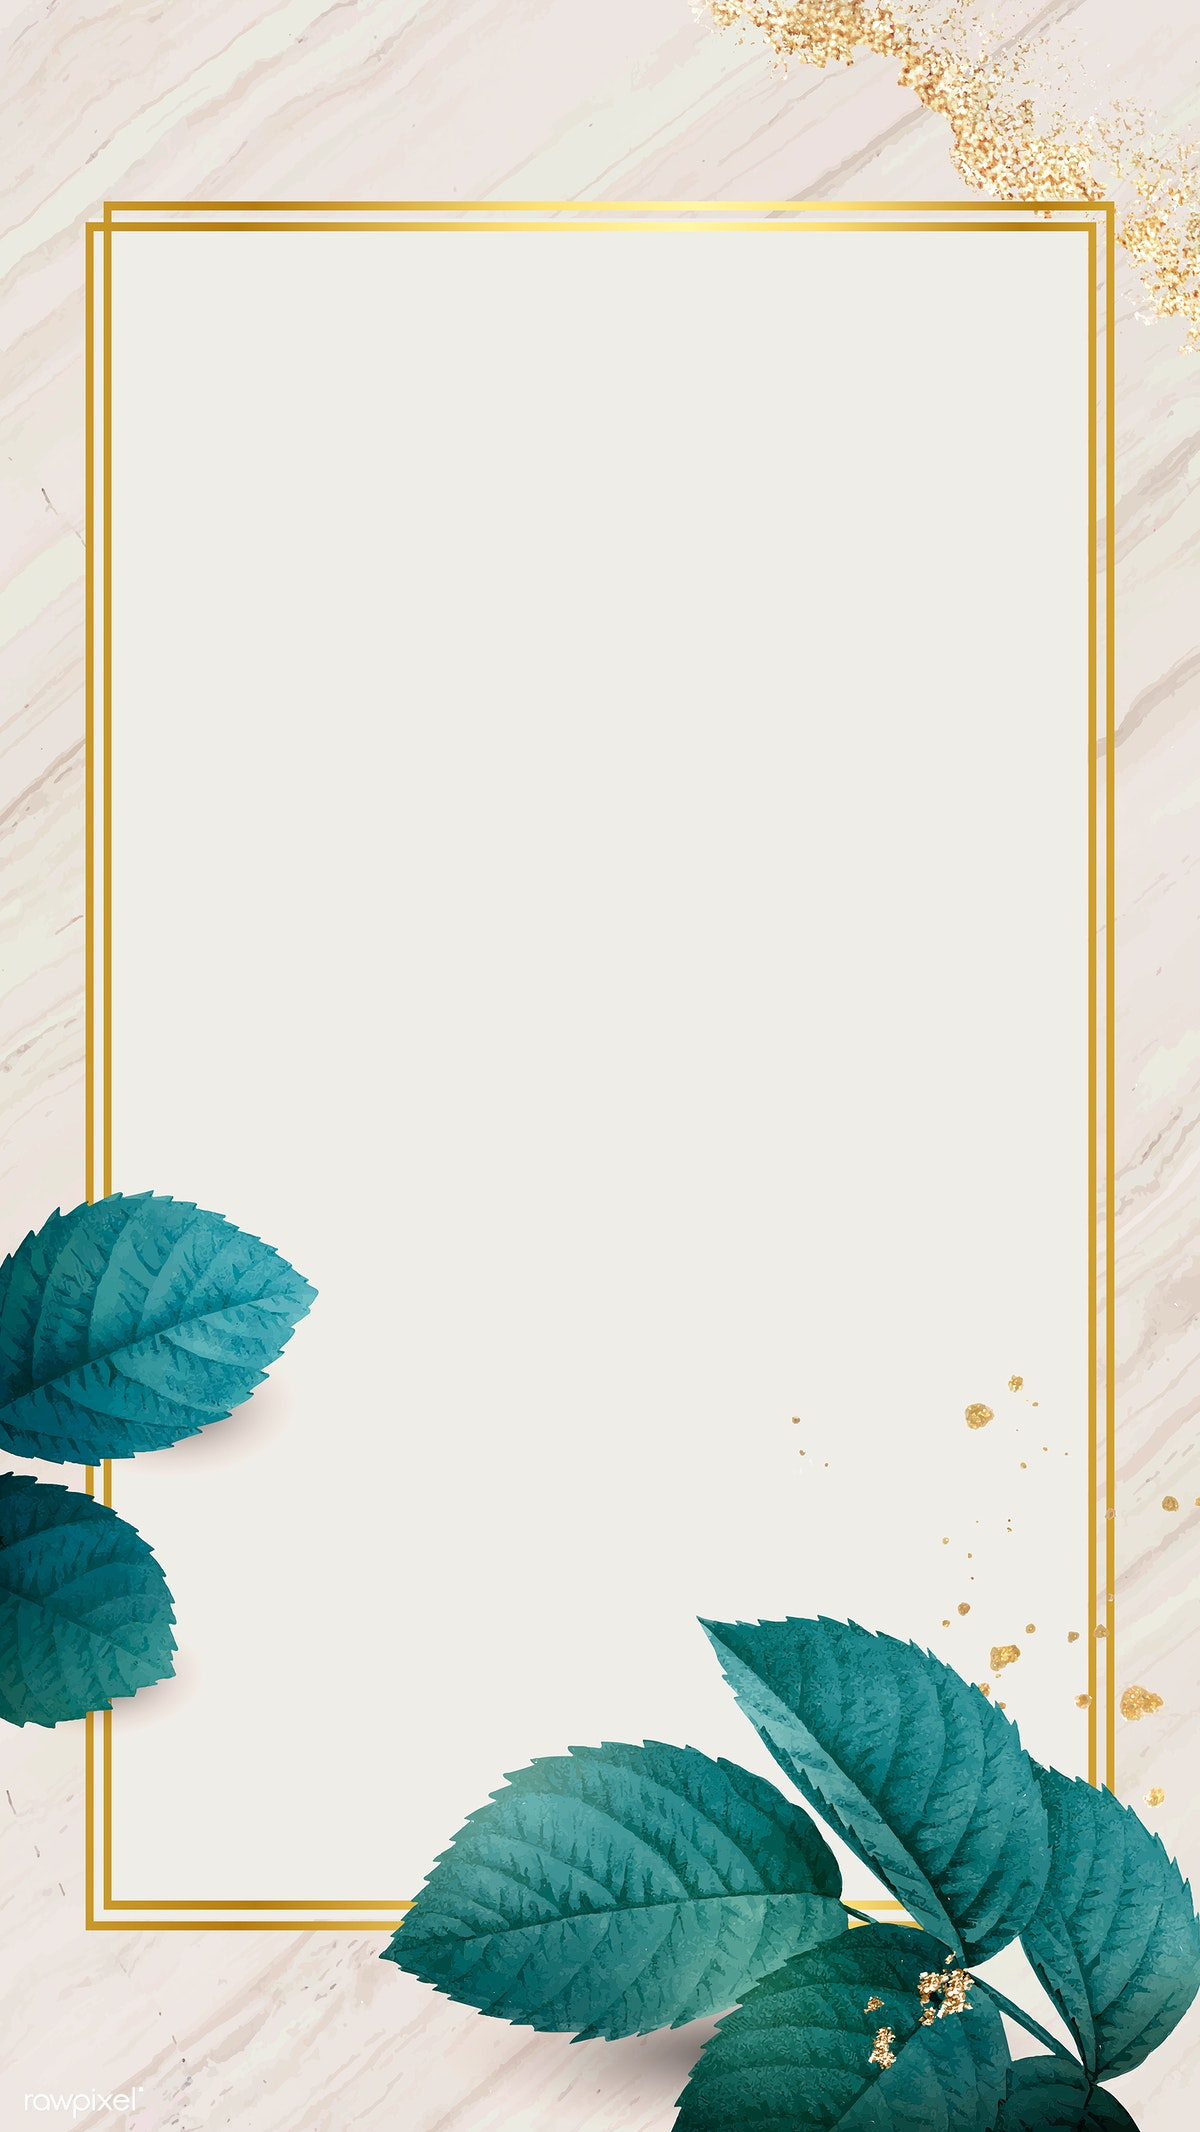 Download premium illustration of Gold frame with foliage pattern mobile